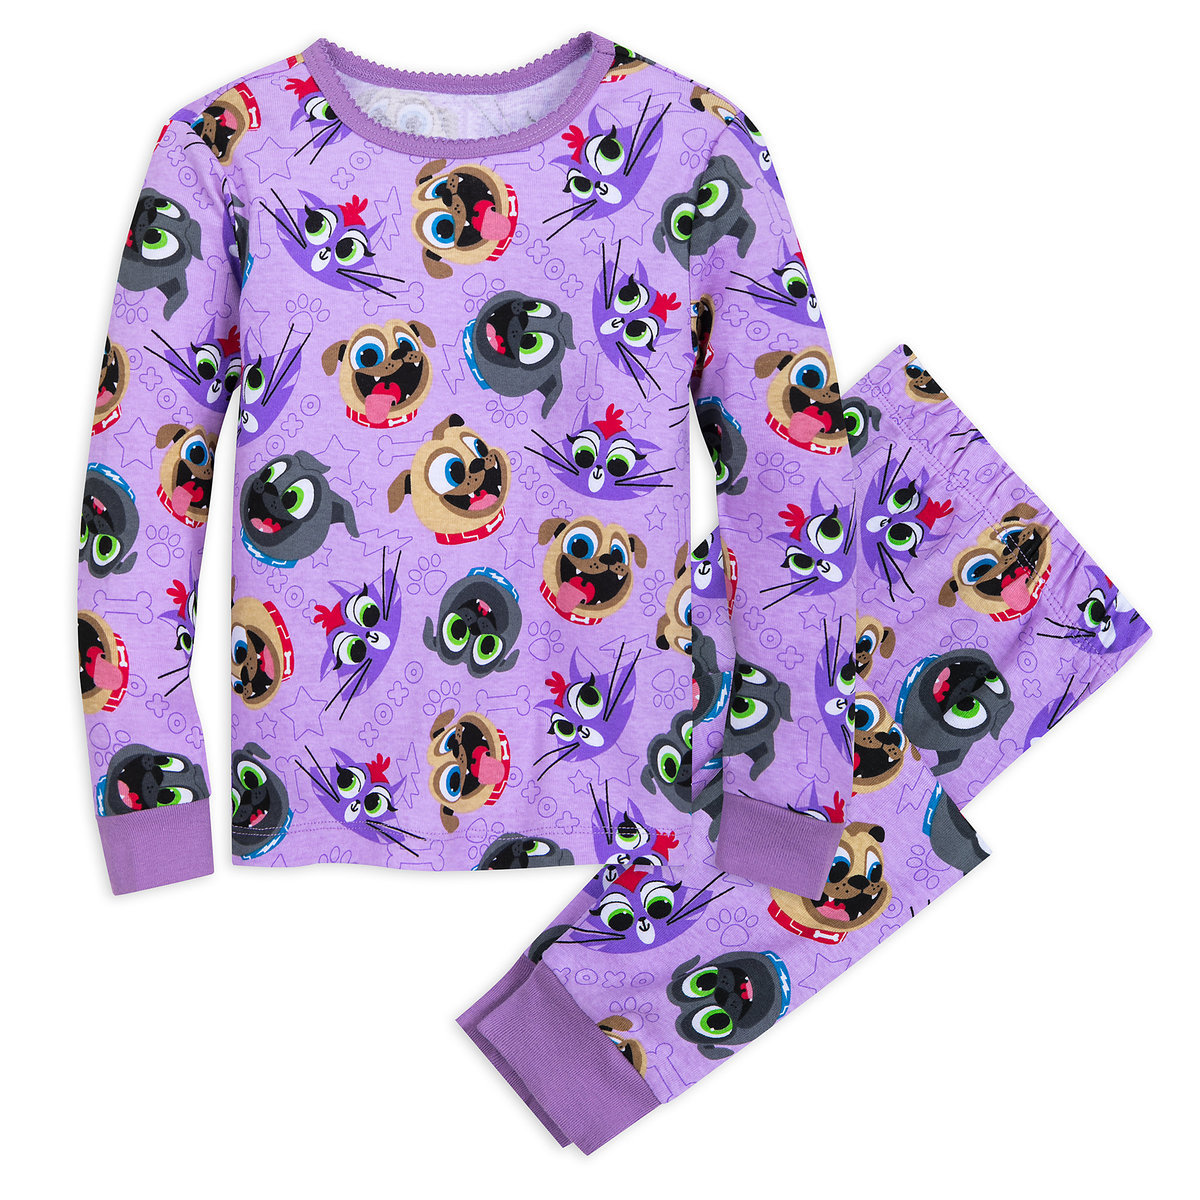 93fbfa22f Product Image of Puppy Dog Pals PJ PALS for Girls # 1